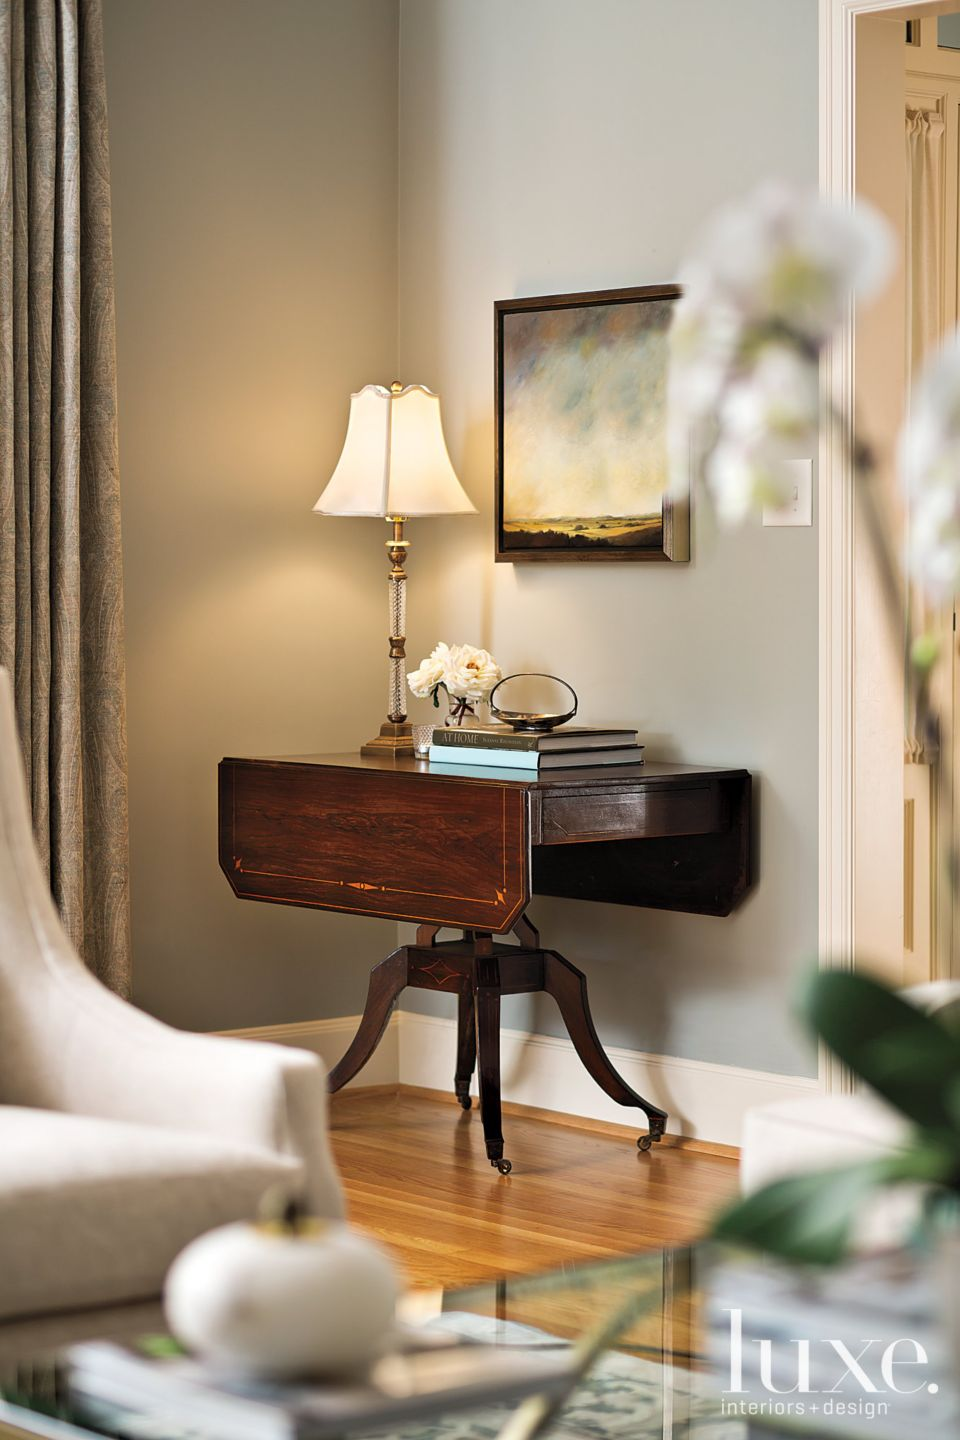 Transitional Neutral Living Room Vignette with Lamp-Lit Painting